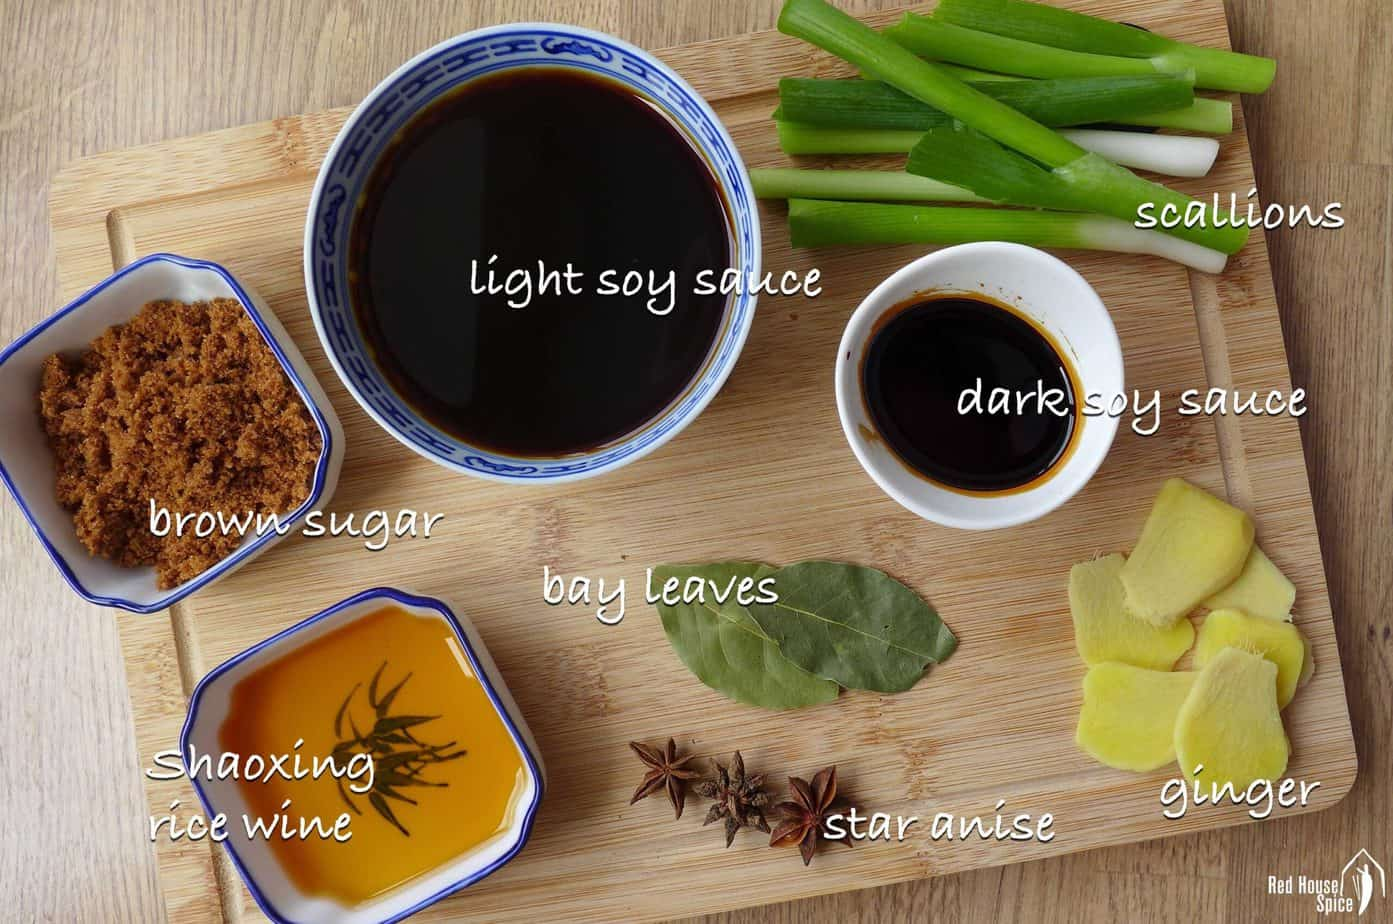 soy sauce, scallions, ginger, sugar and some spices